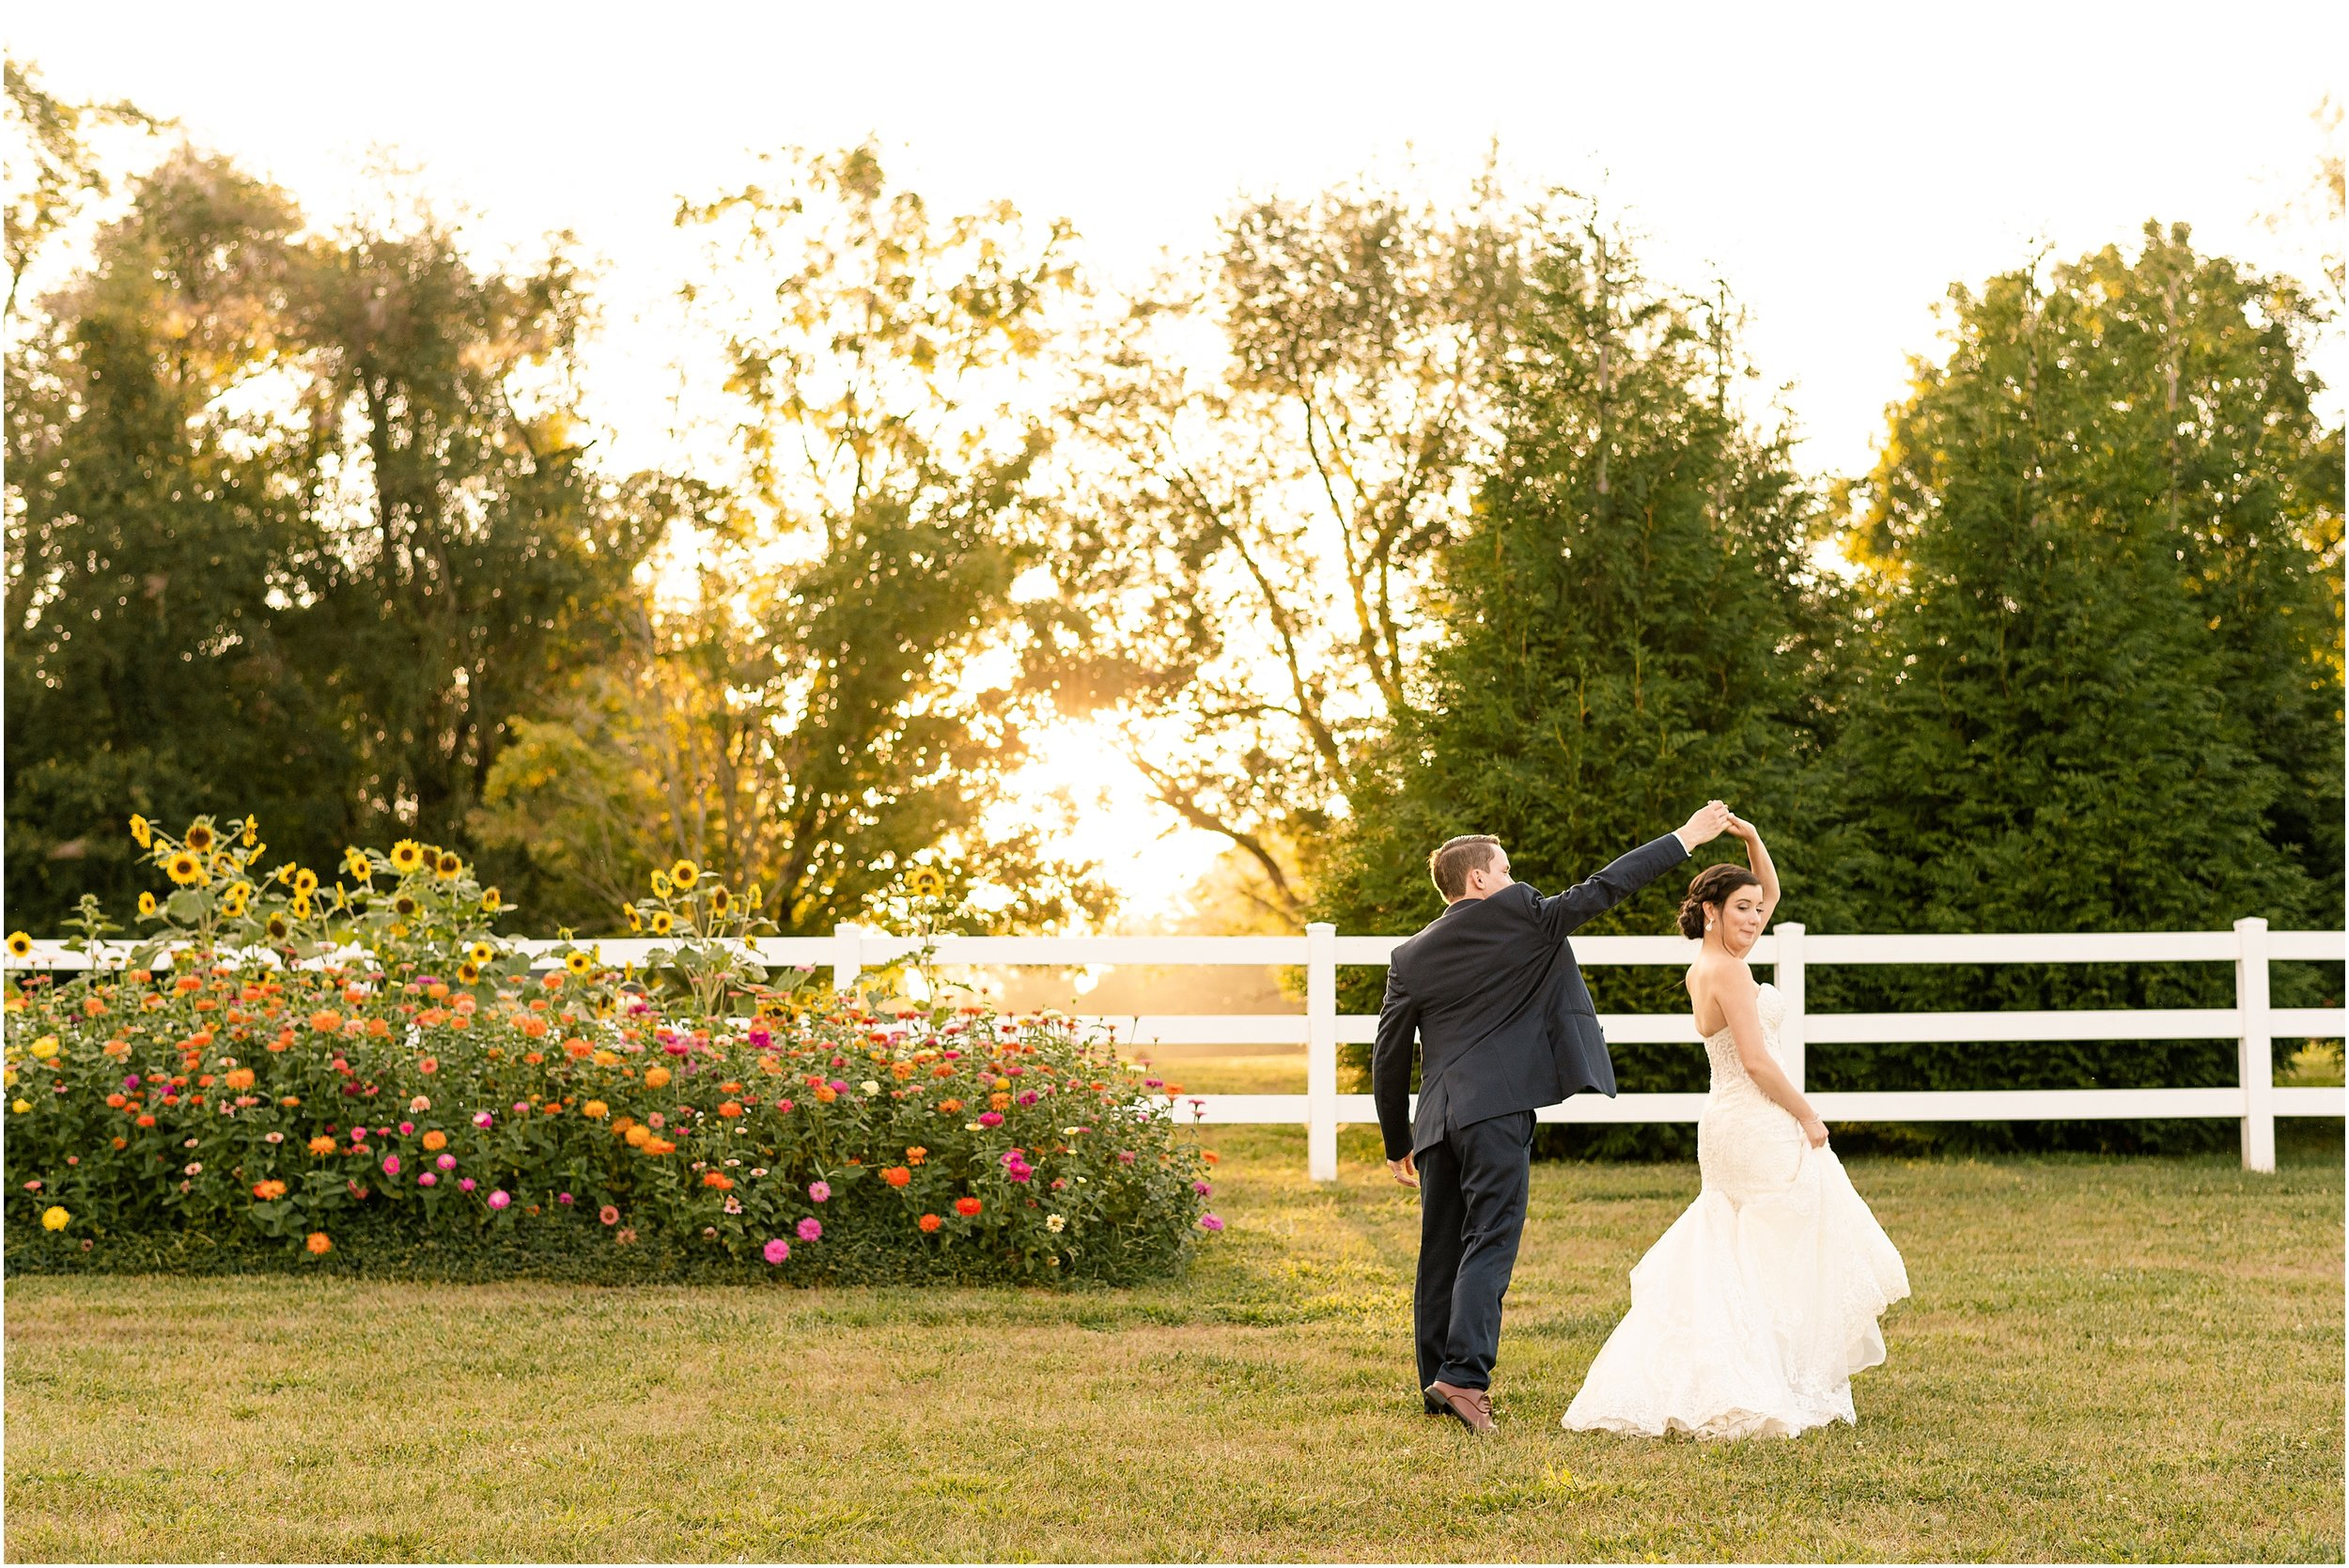 hannah leigh photography Pond View Farm Wedding White Hall MD_3676.jpg